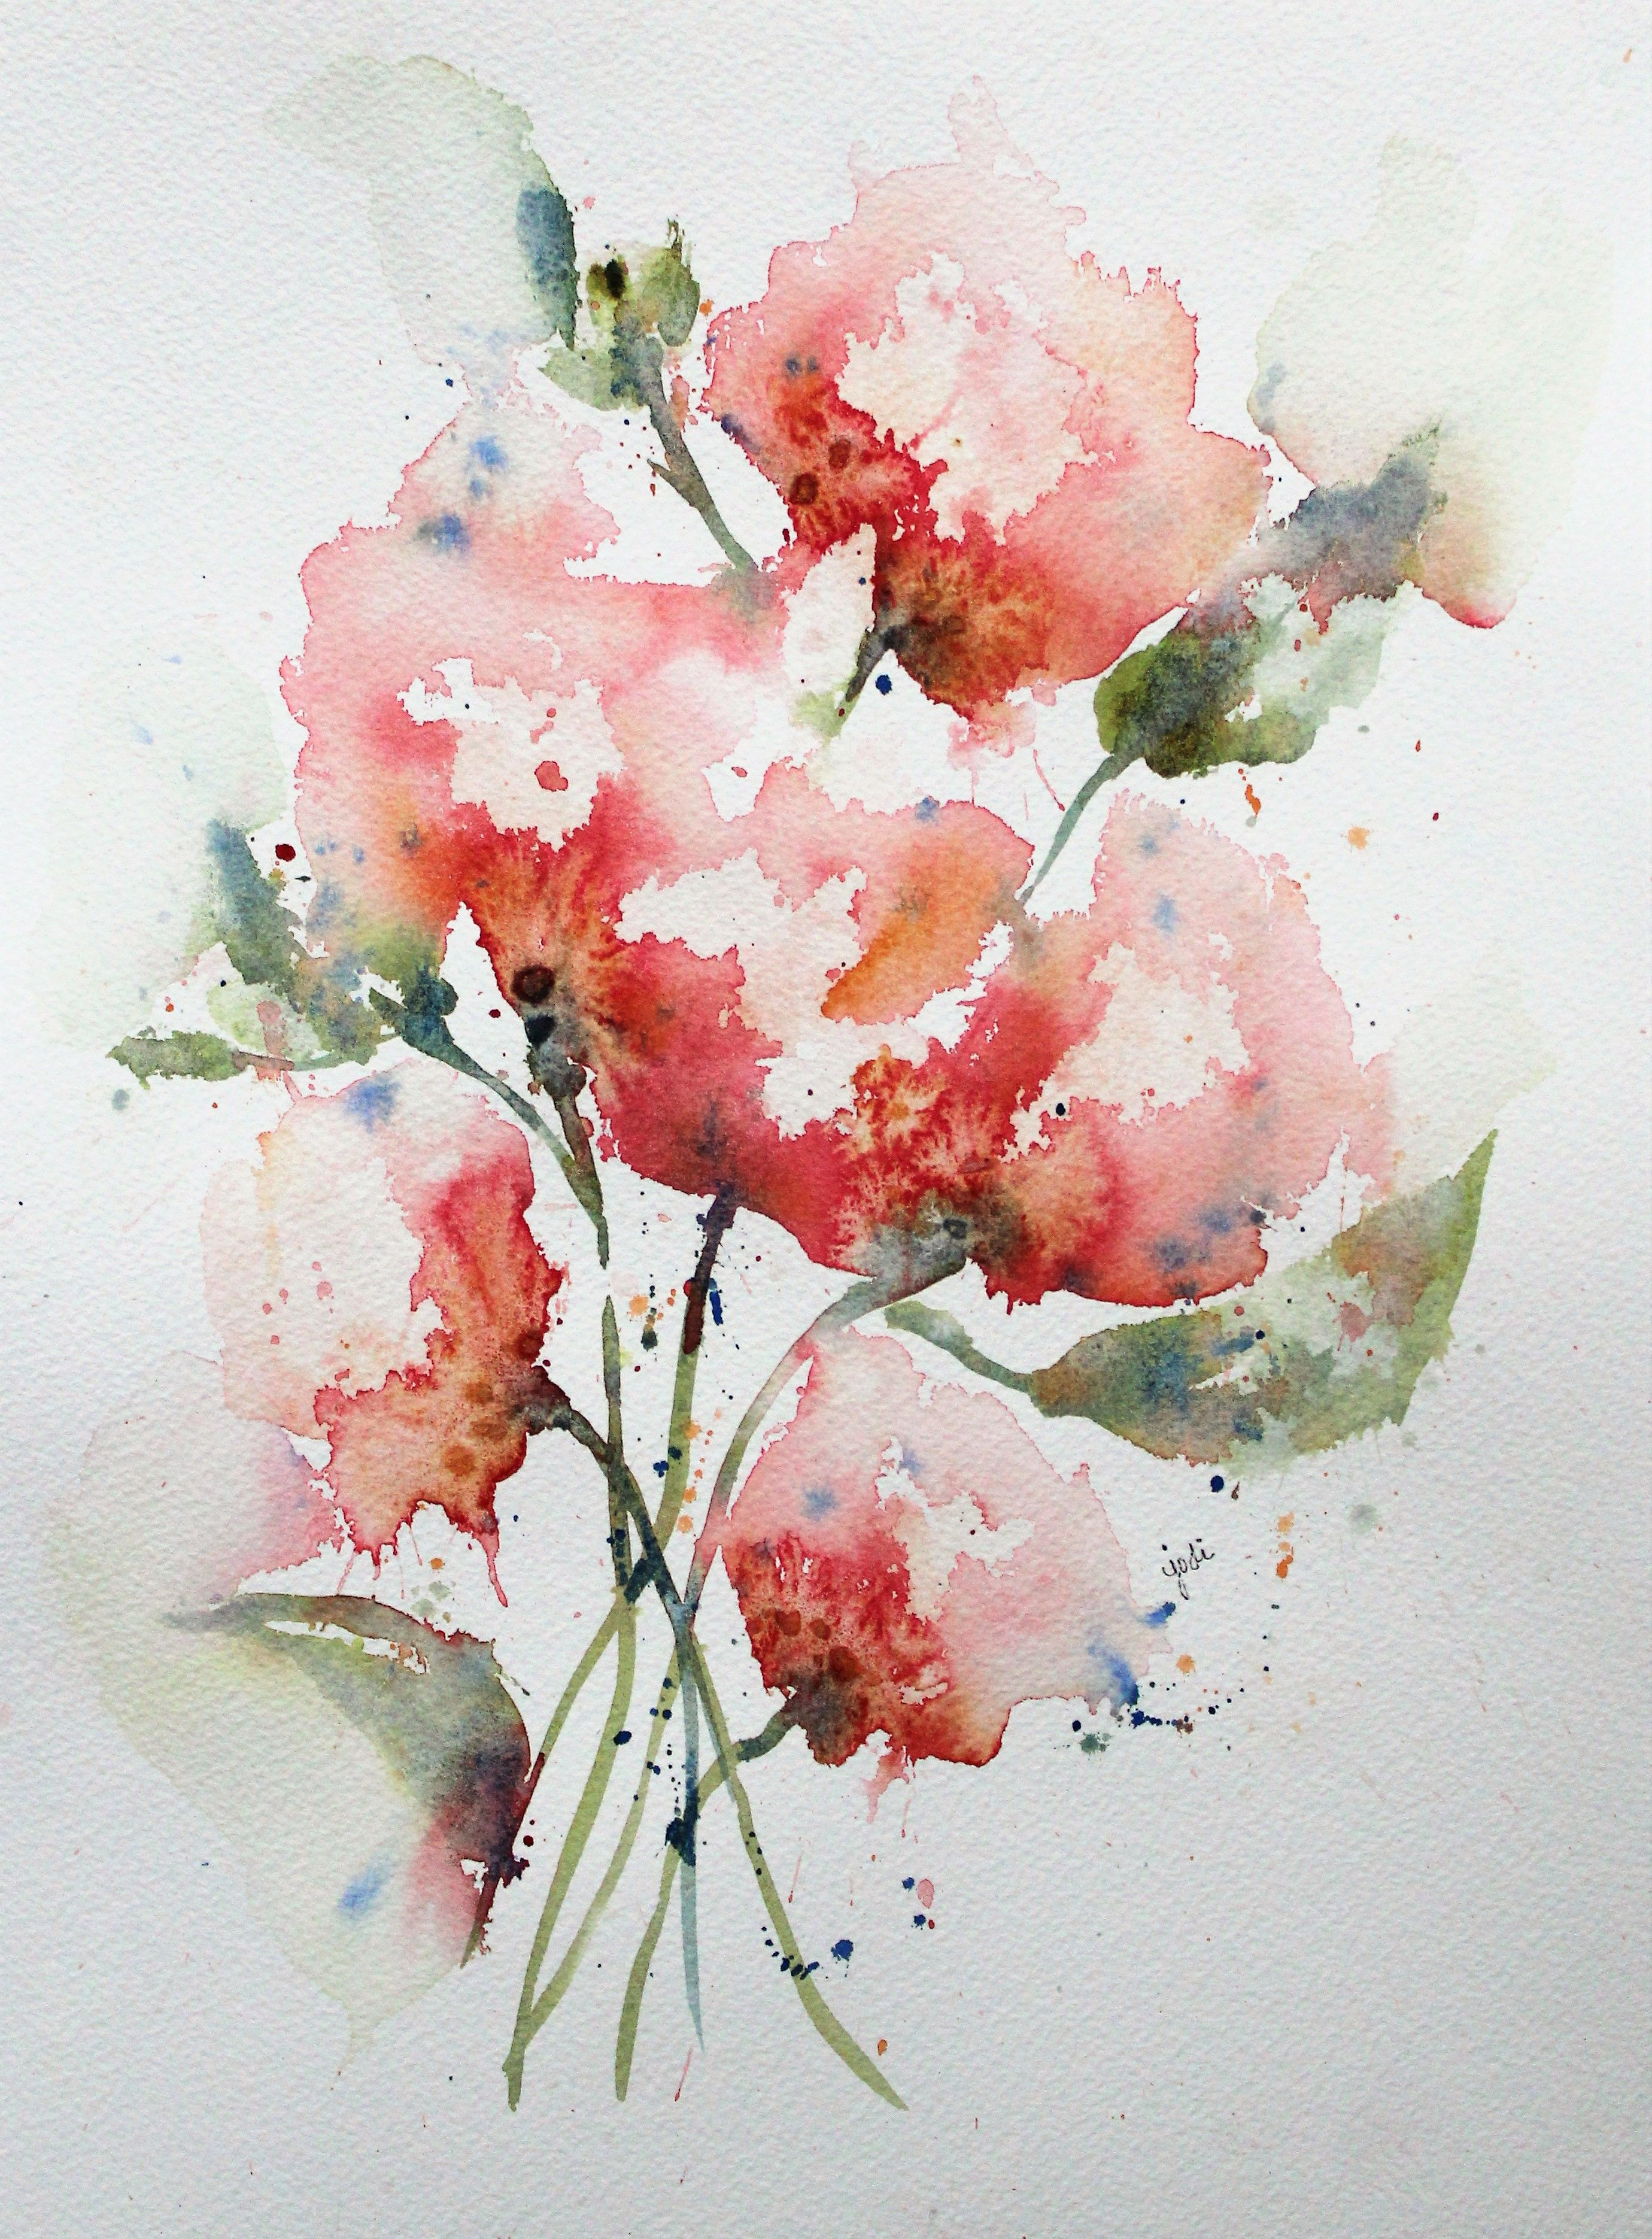 Abstract Floral Flower Watercolor Painting Jodi Mckinney